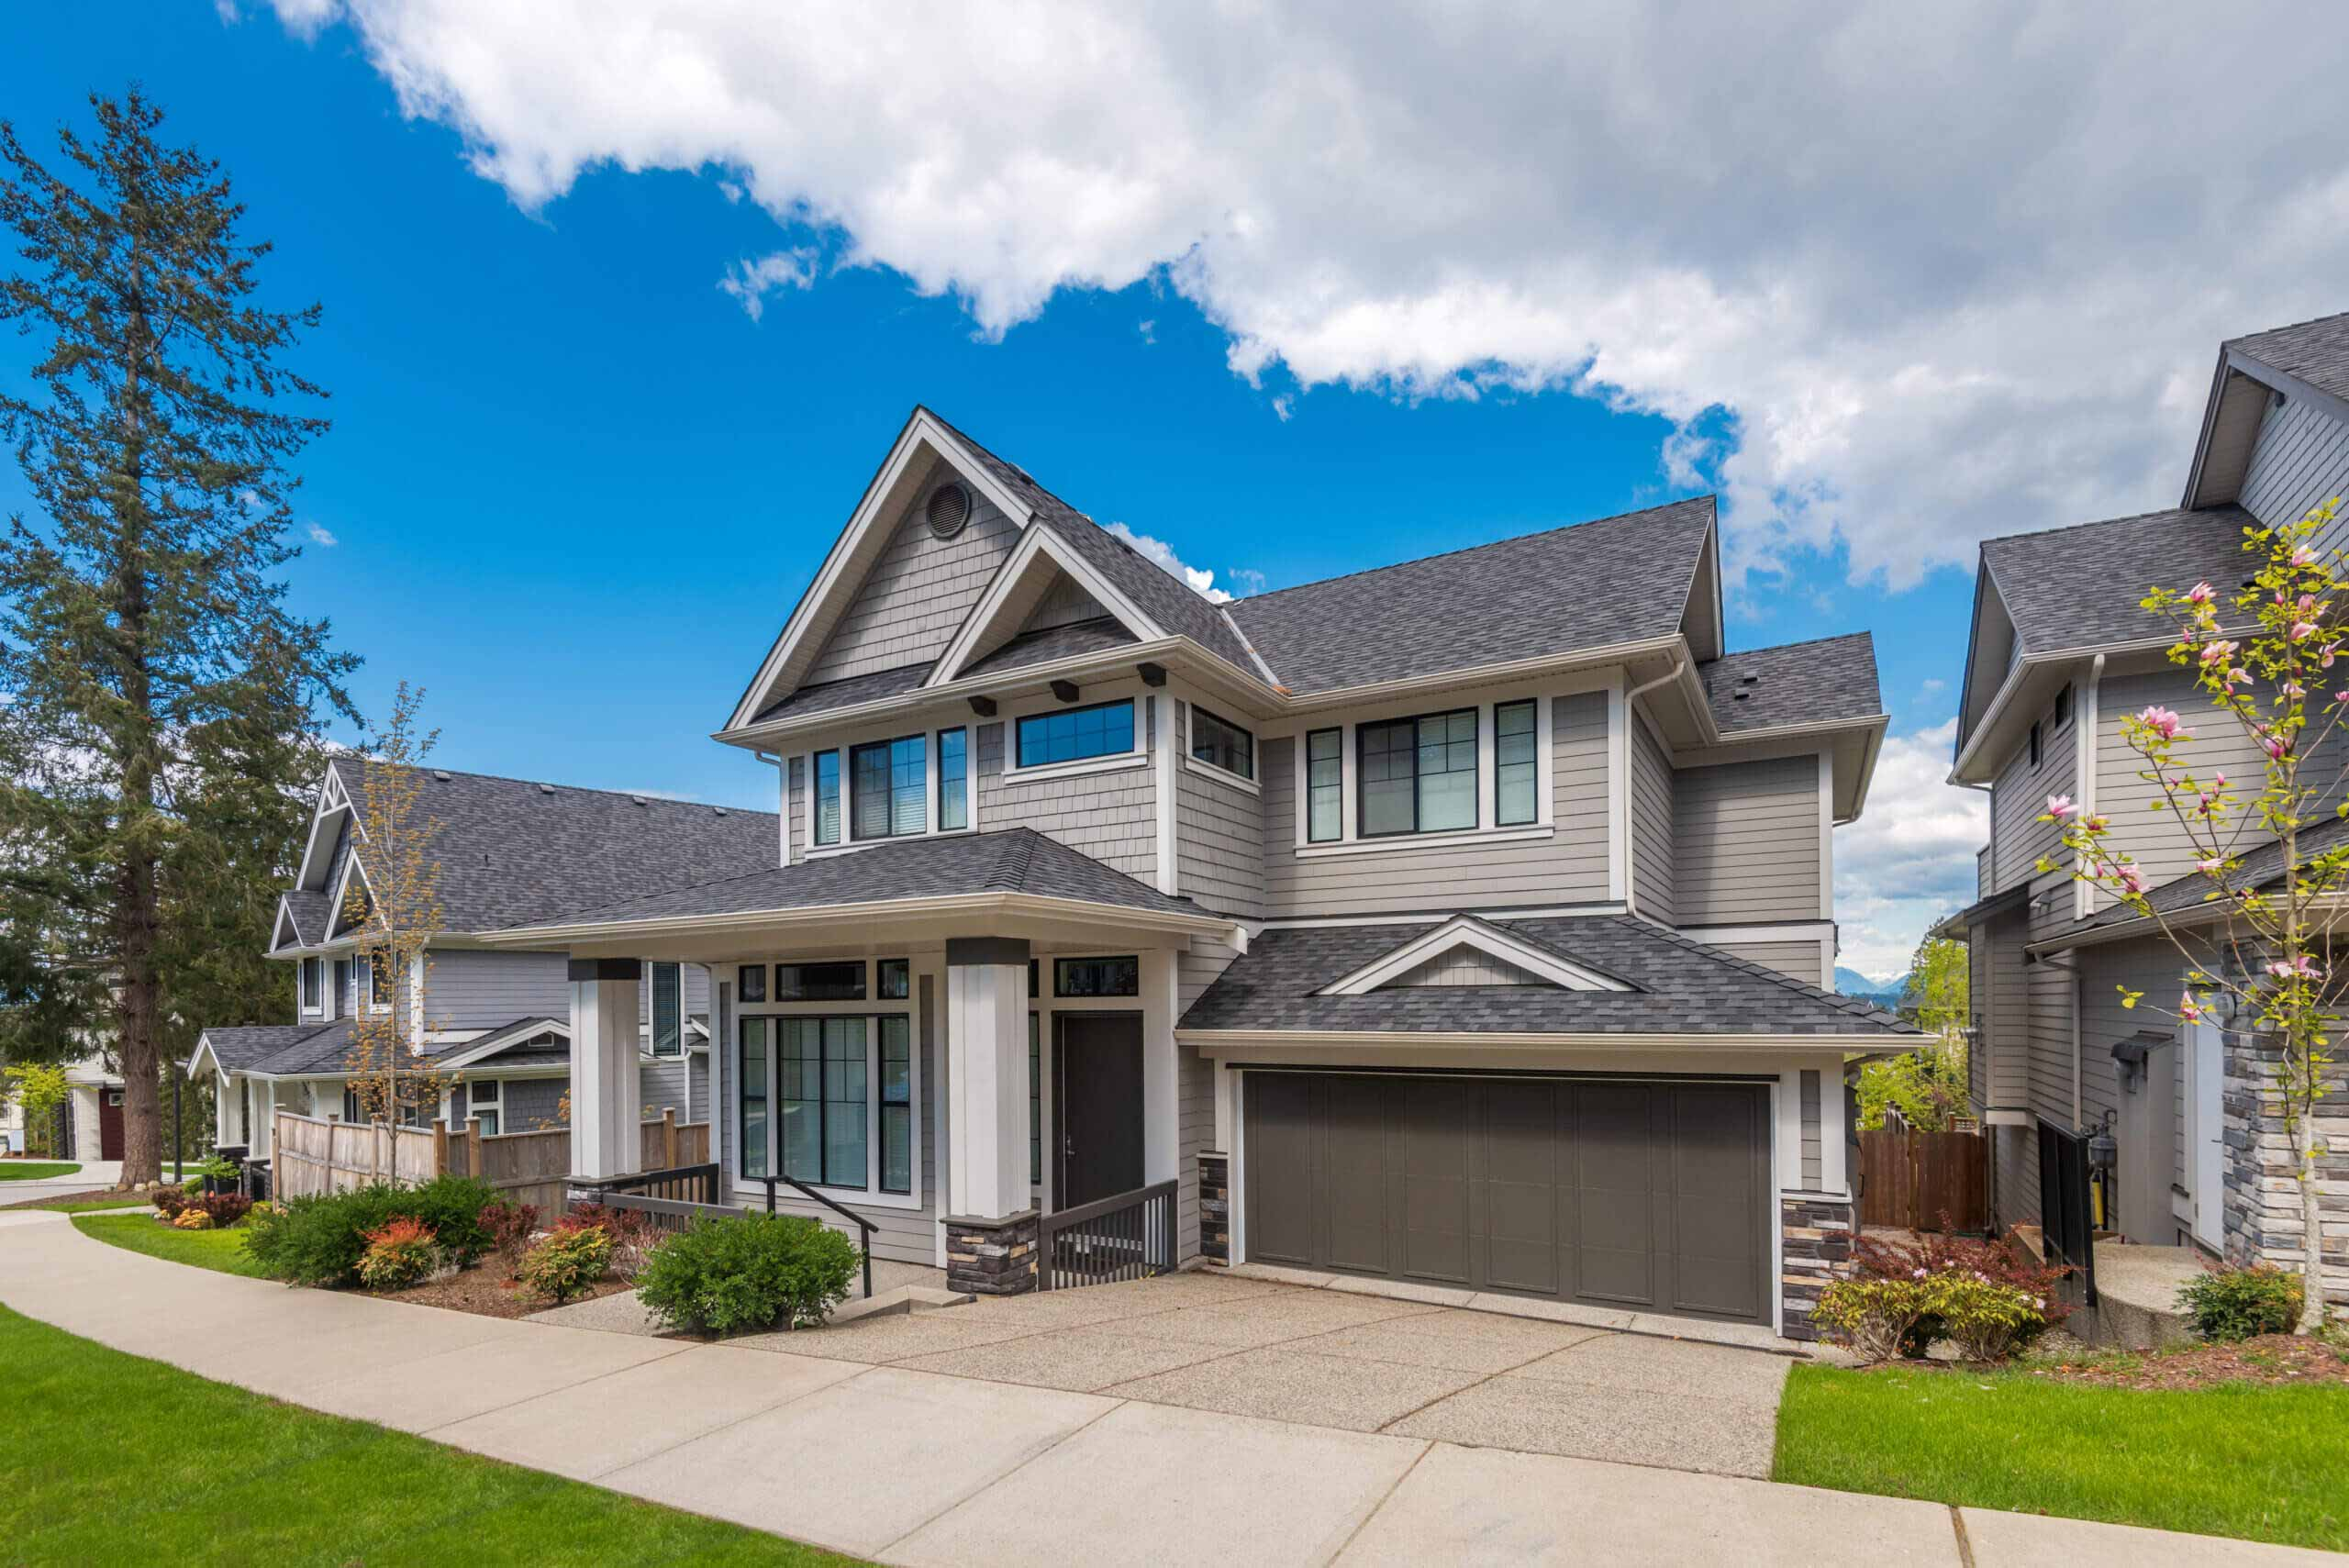 The Homeowner's Guide to Roofing